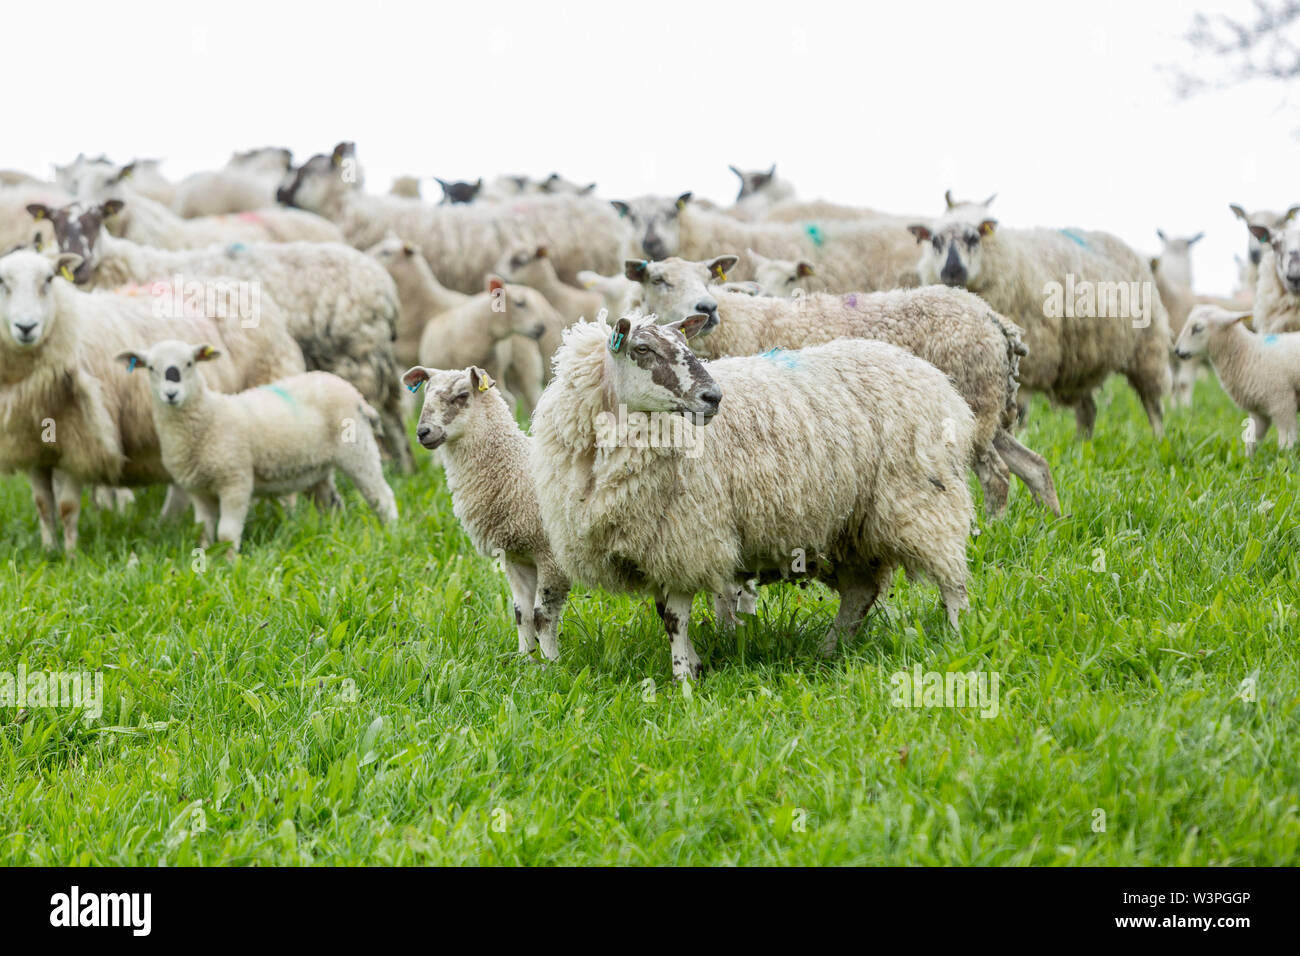 Welsh Mules and their Aberfield lambs on grazing rotation at a South Wales farm.  ©James Davies Photography - Stock Image